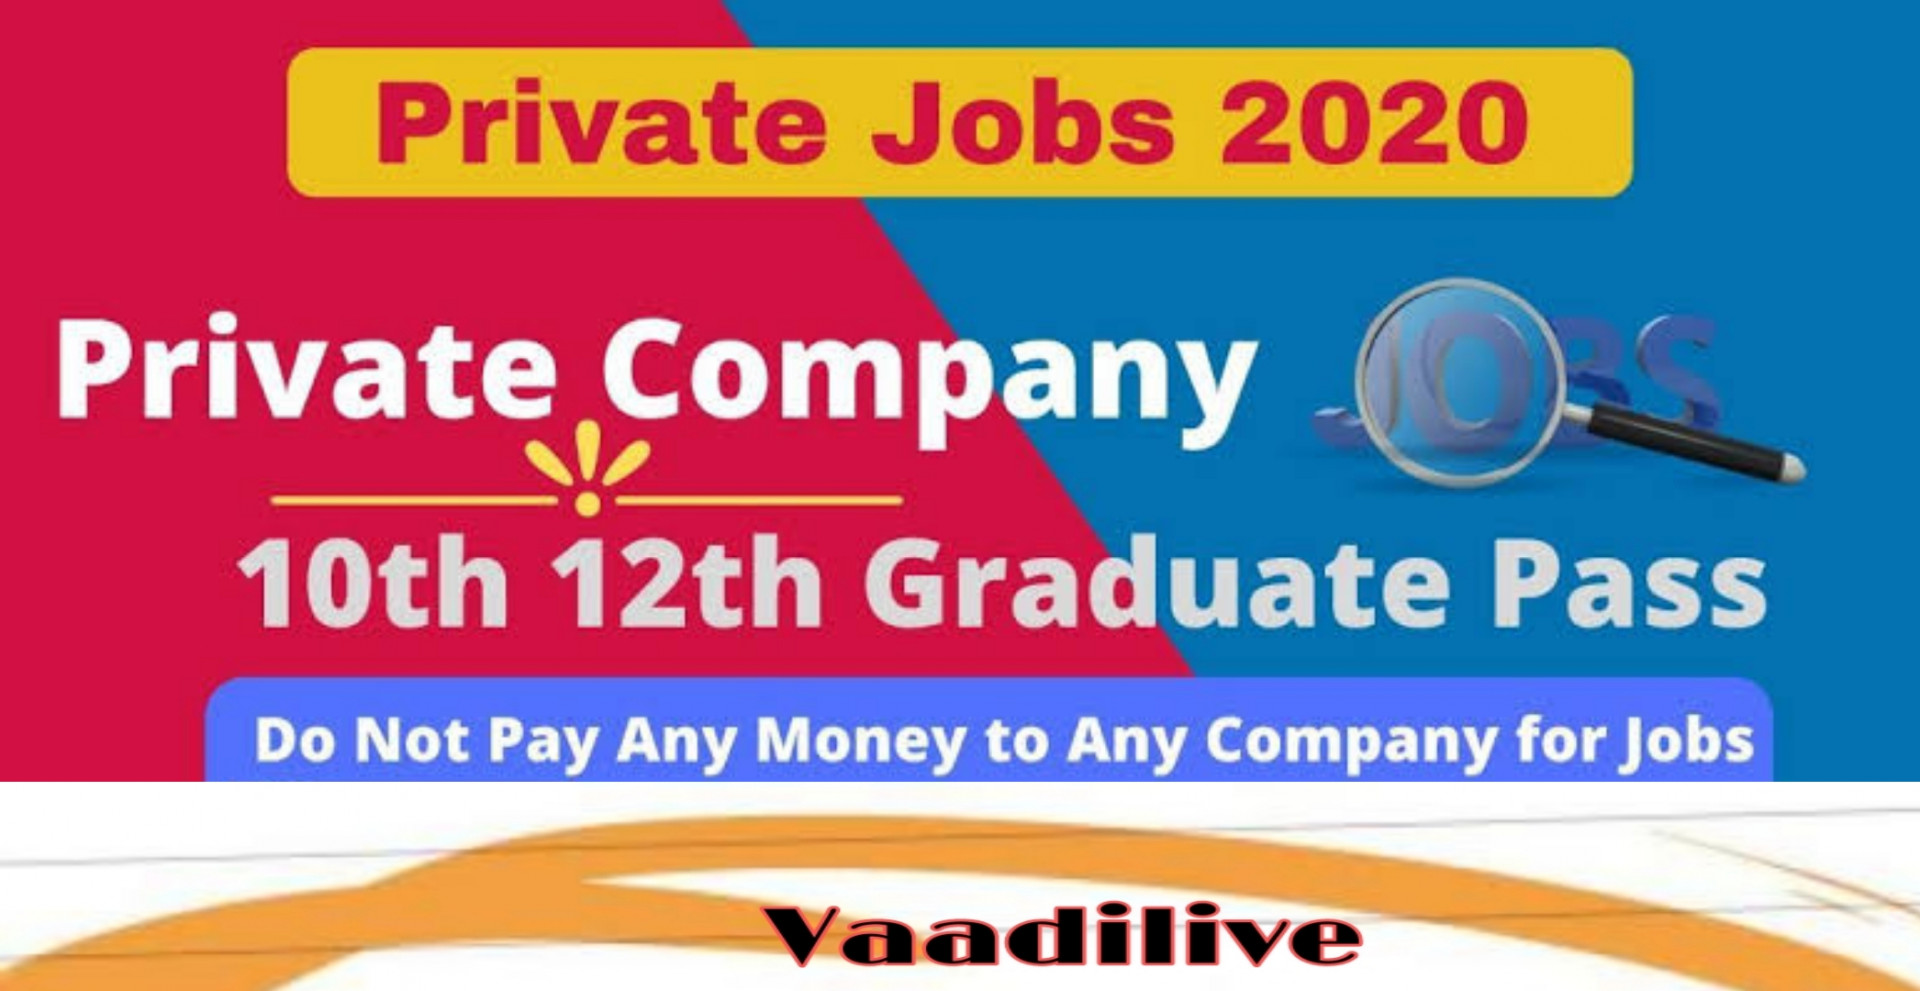 Srinagar Private Jobs 2020 | 10th 12th Pass Graduates Freshers Can Apply Latest Vacancy Today